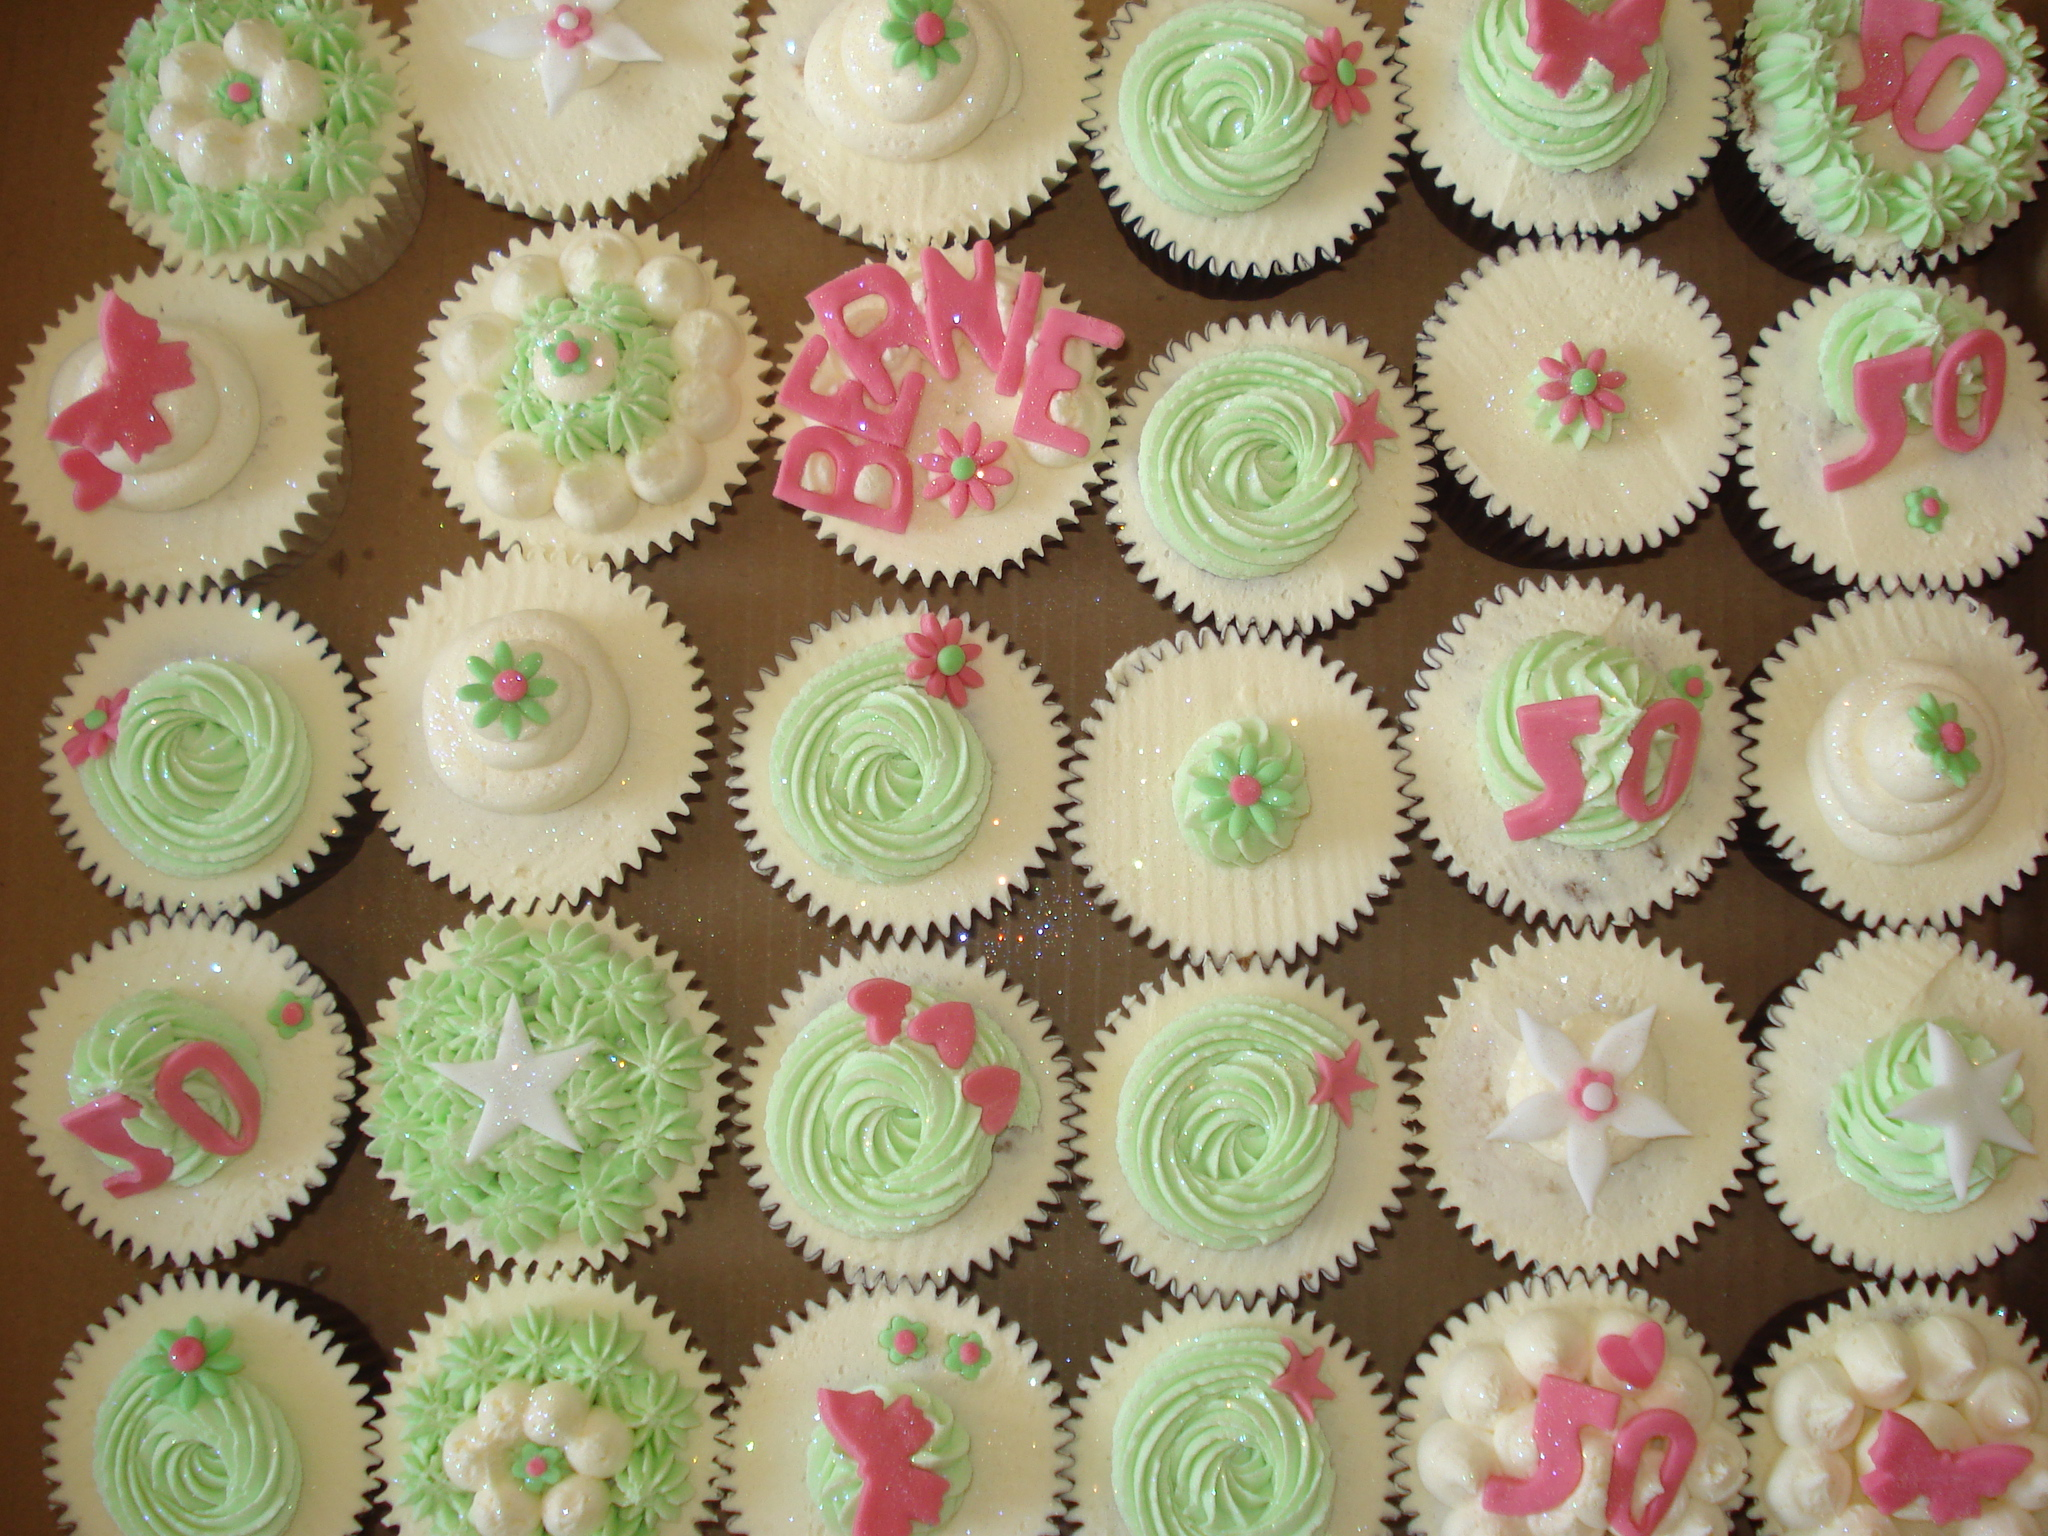 Lovely Summery 50th Birthday Cupcakes Cakes By Lizzie